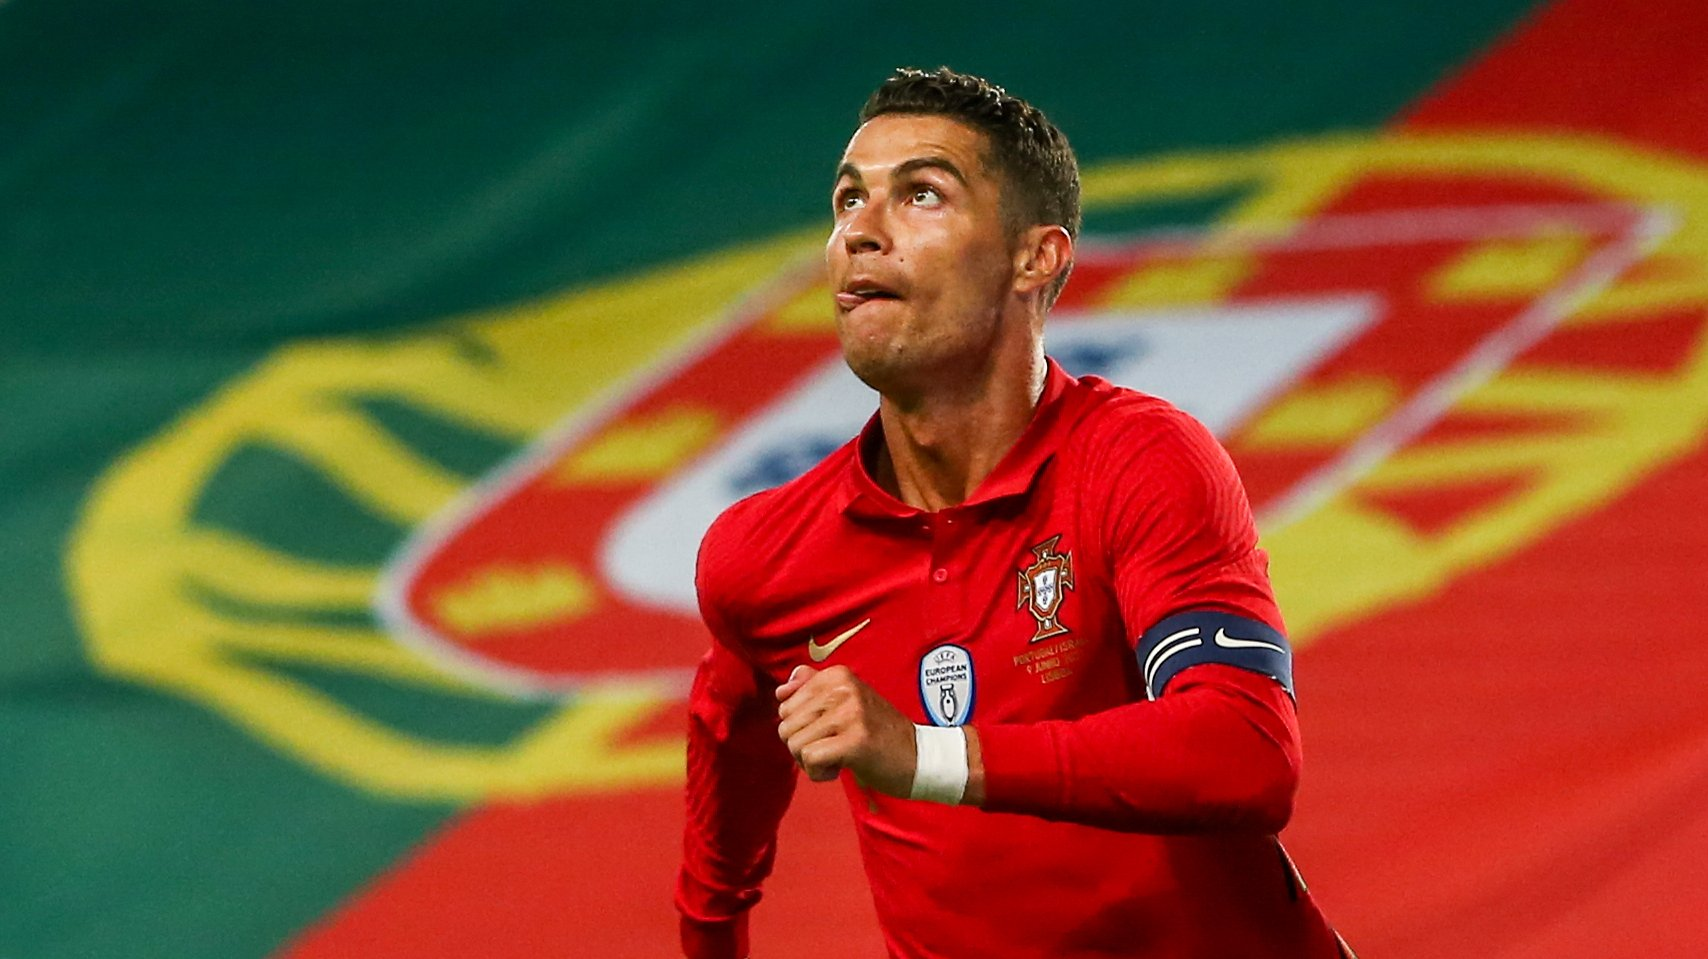 Portugal's Cristiano Ronaldo in action during their friendly match against Israel in preparation for the upcoming UEFA EURO 2020, at Alvalade Stadium in Lisbon, Portugal, 09 June 2021. JOSE SENA GOULAO/LUSA